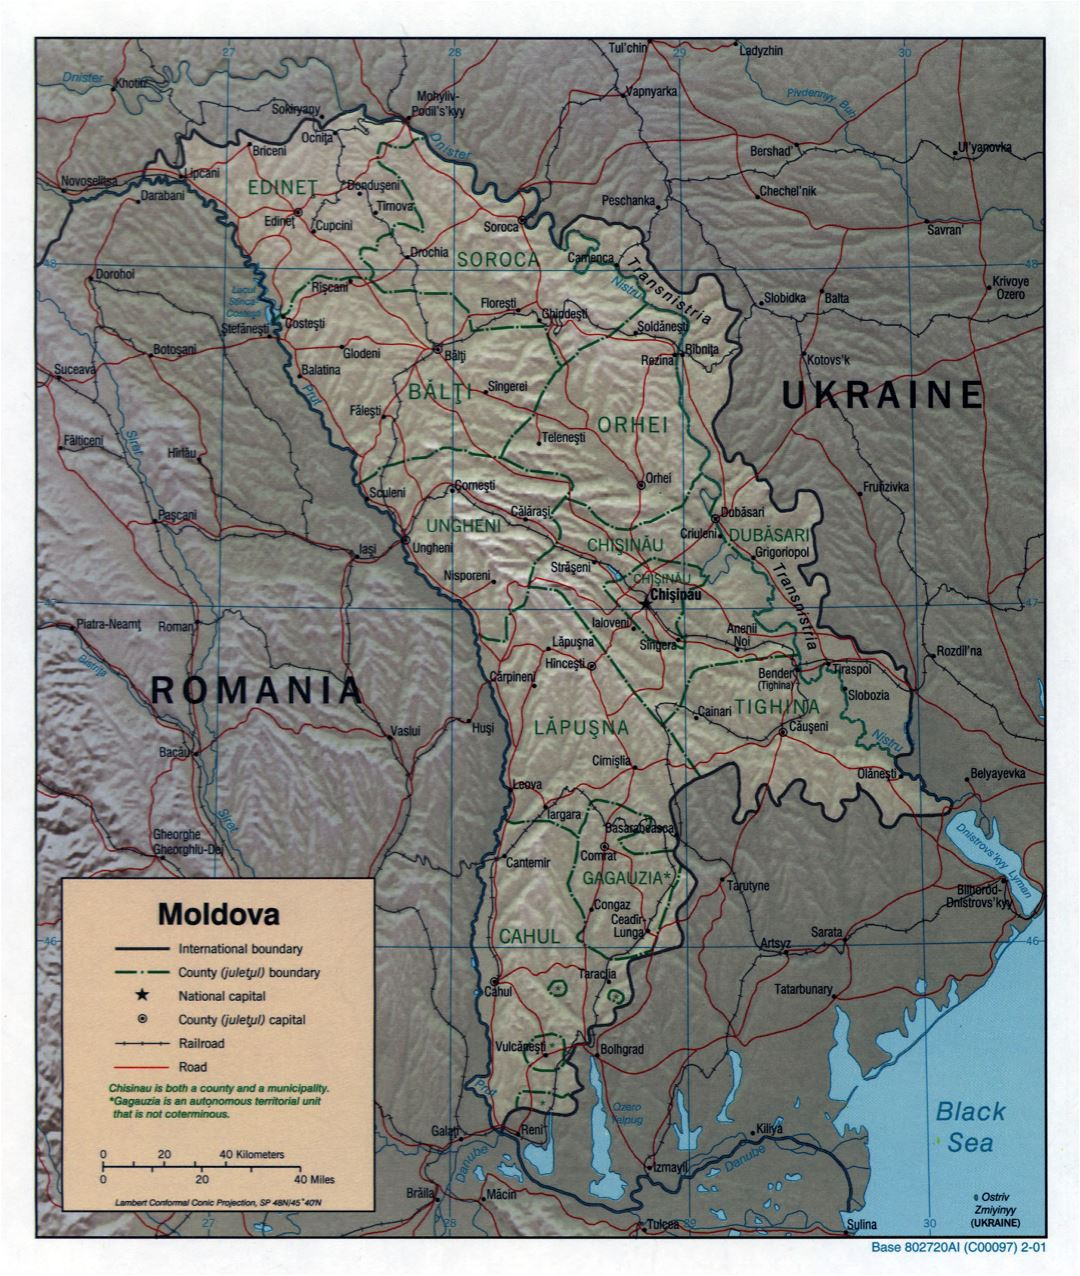 Large scale political and administrative map of Moldova with relief, roads, railroads and major cities - 2001